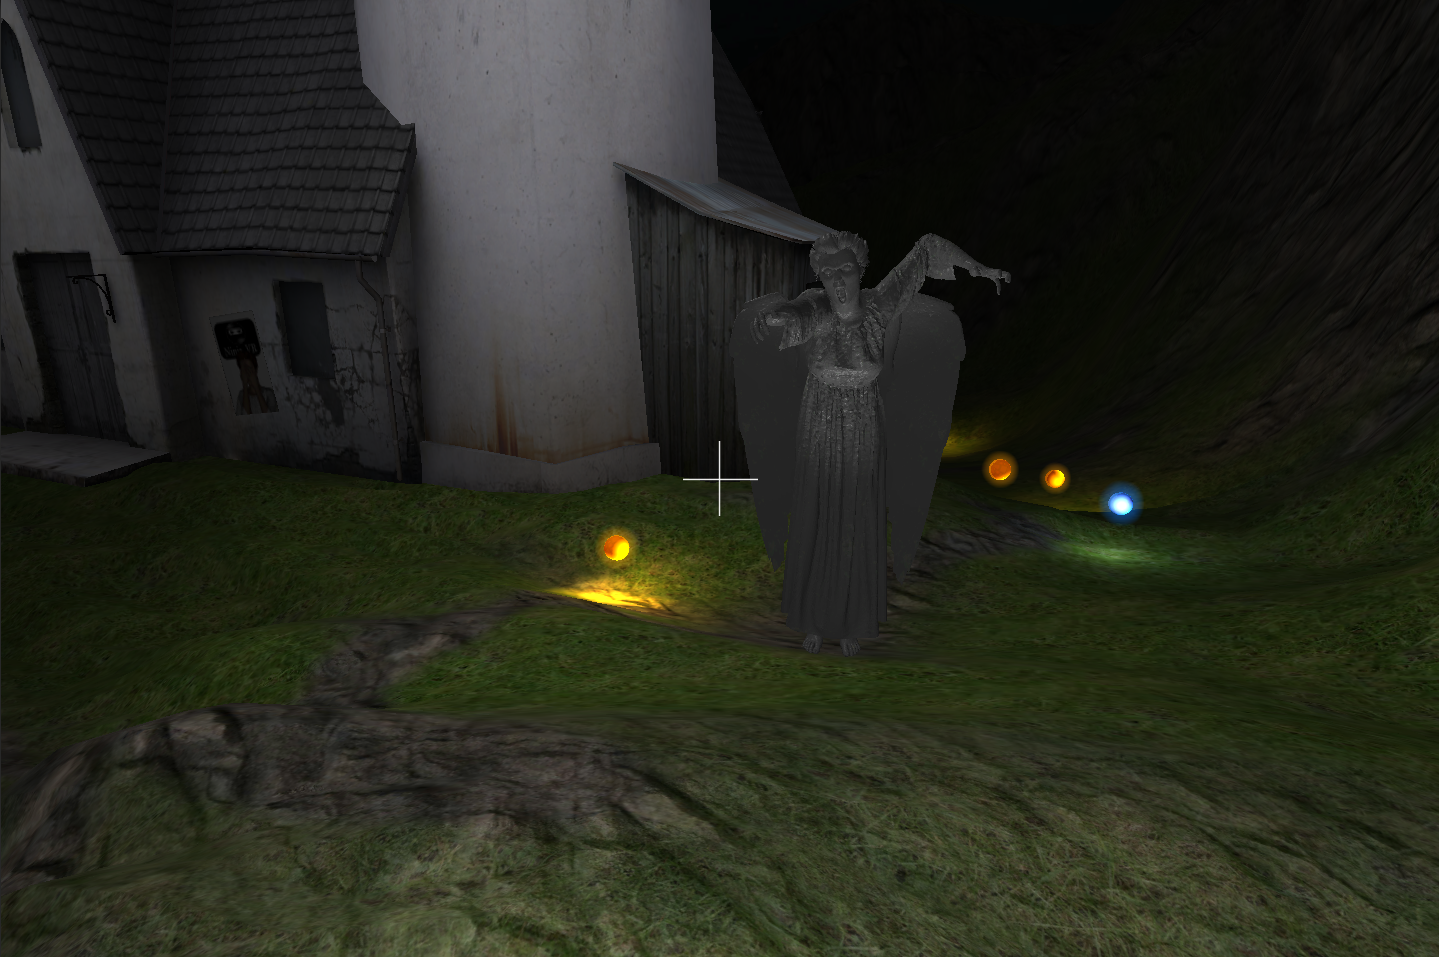 screenshot 3 Weeping Angels VR content image